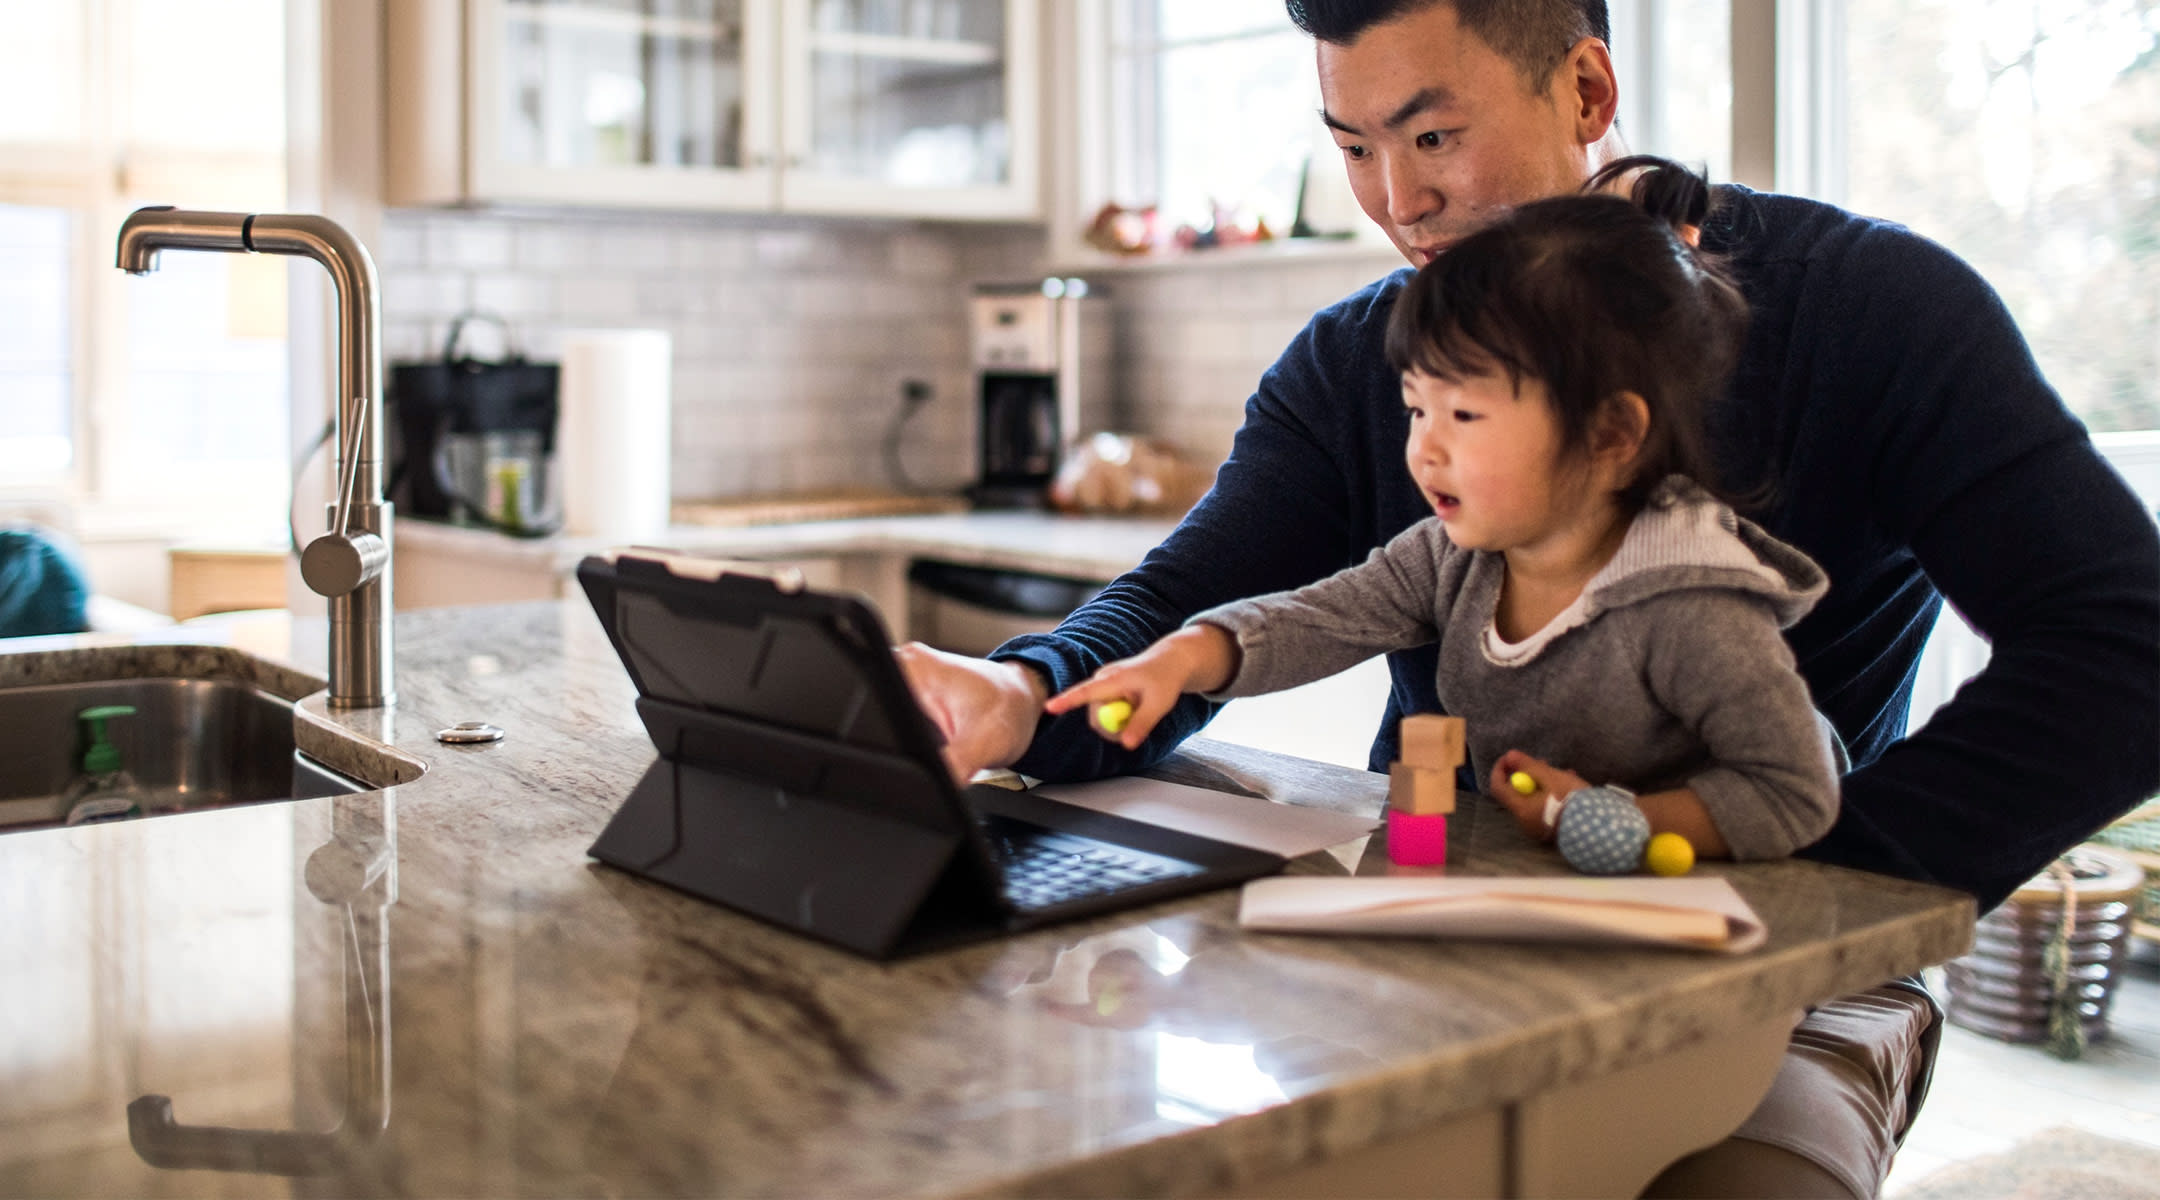 Why More And More Parents Are Opting >> More Moms And Dads Are Opting To Be Stay At Home Parents